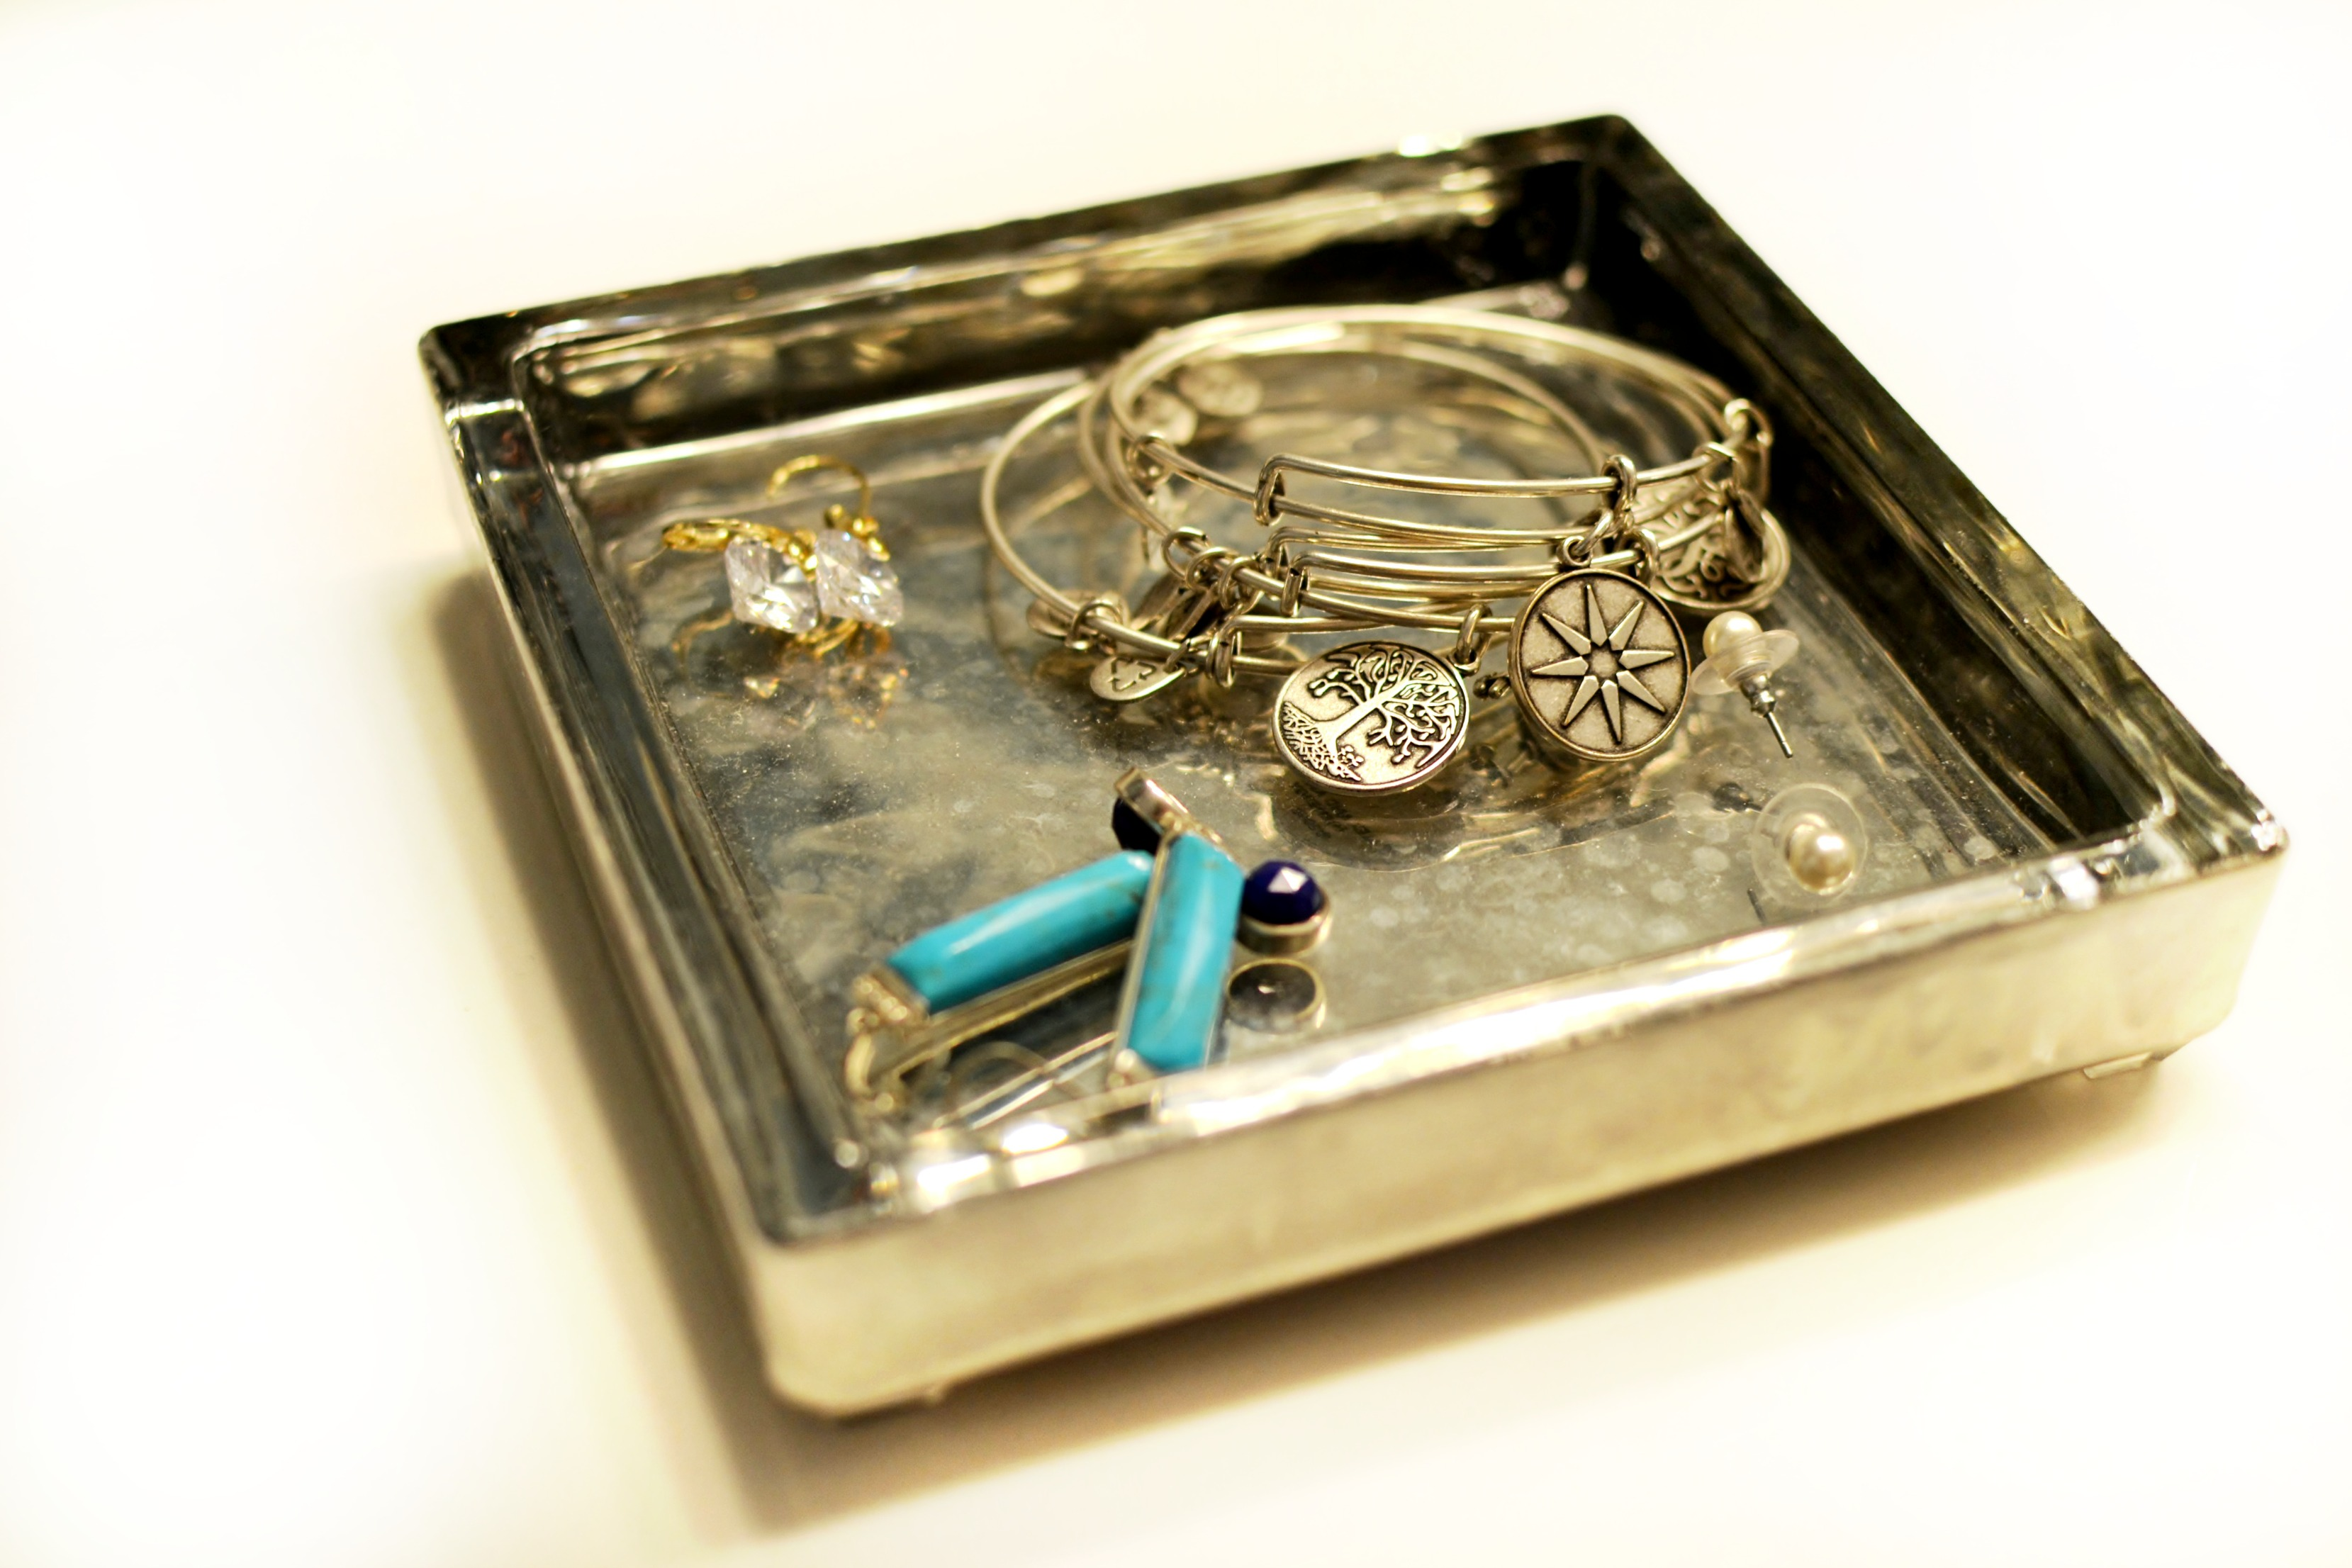 Completely new Mercury Glass Jewelry Tray - As The Bunny Hops® SW38